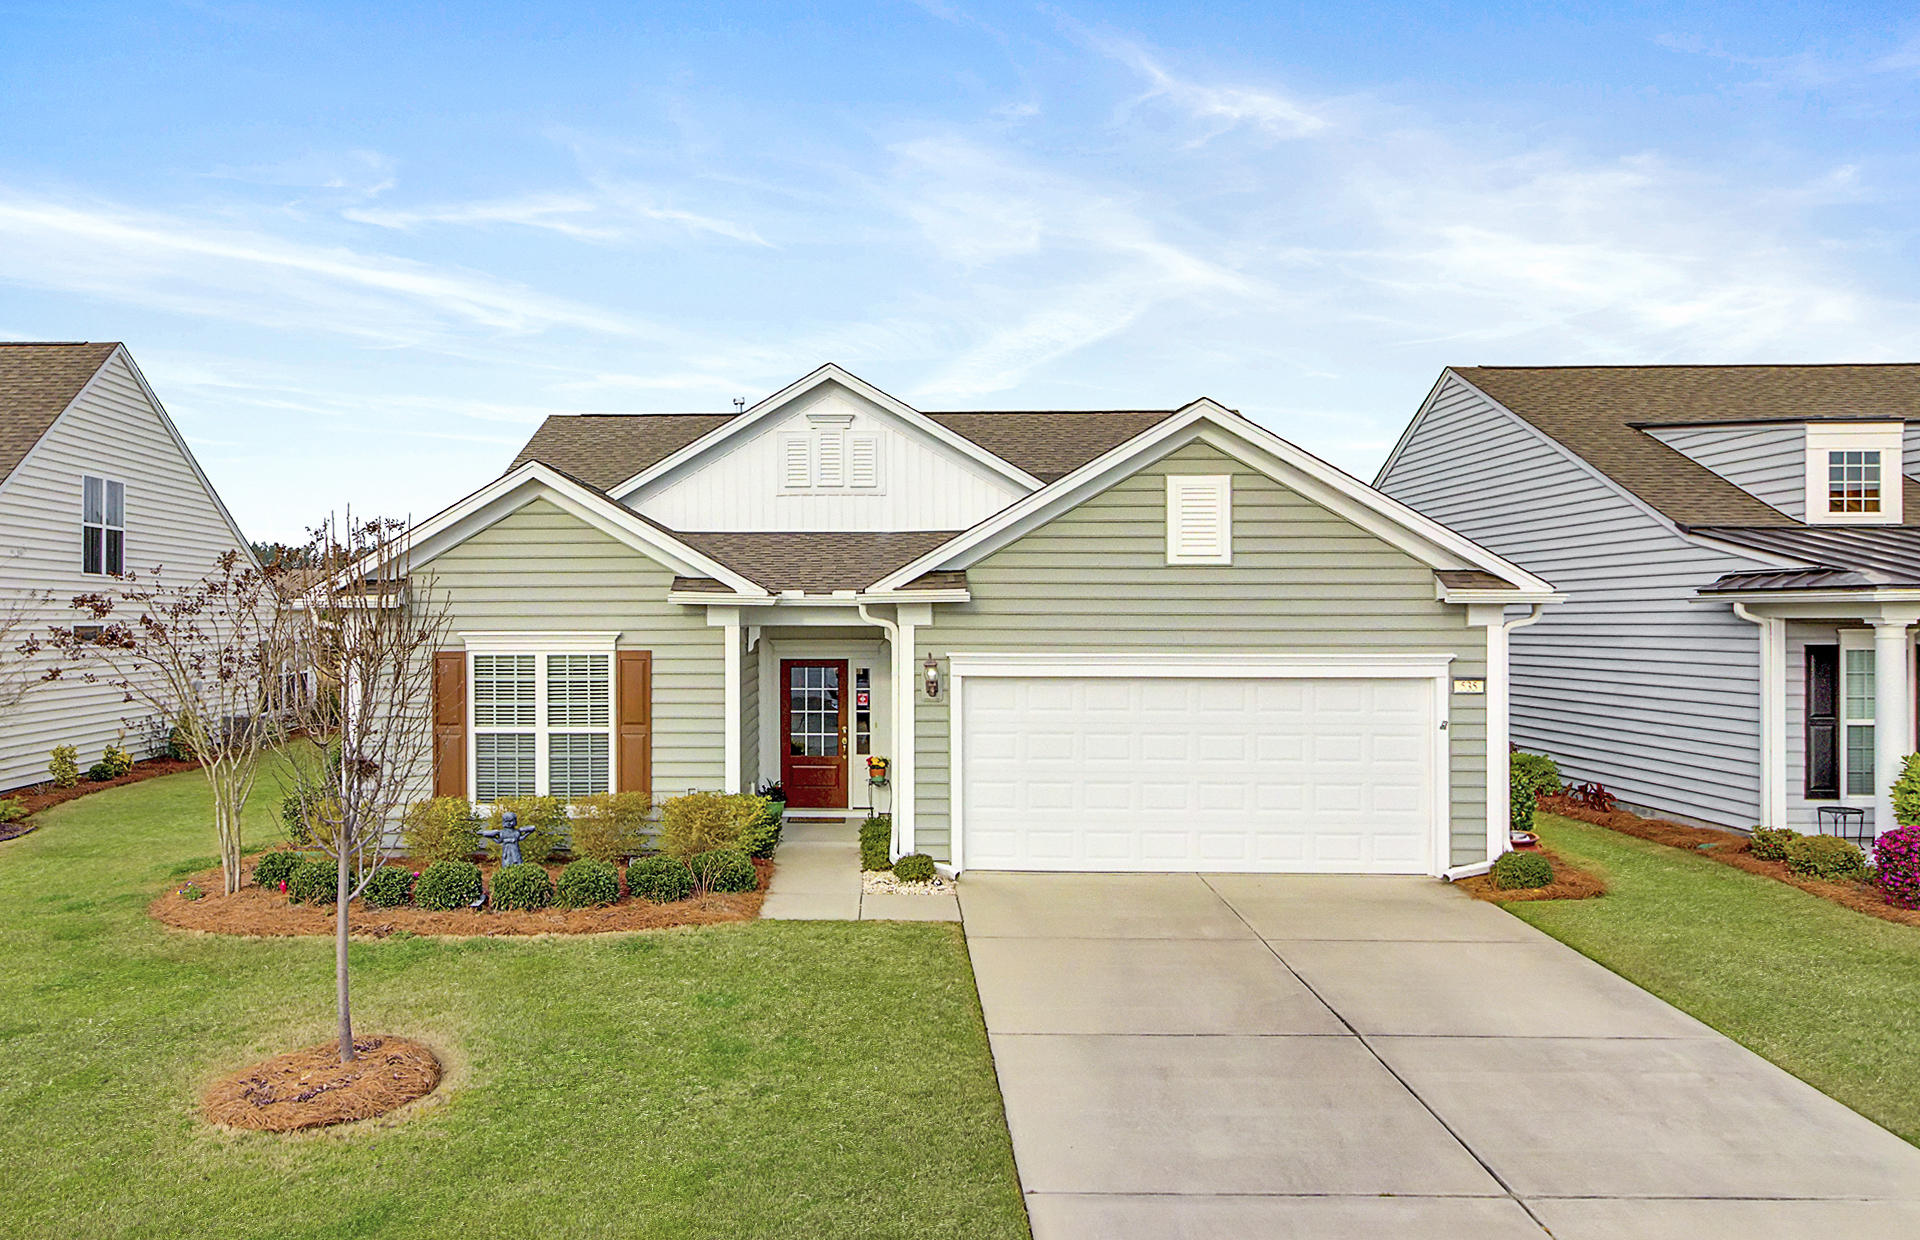 535 Tranquil Waters Way Summerville, SC 29486